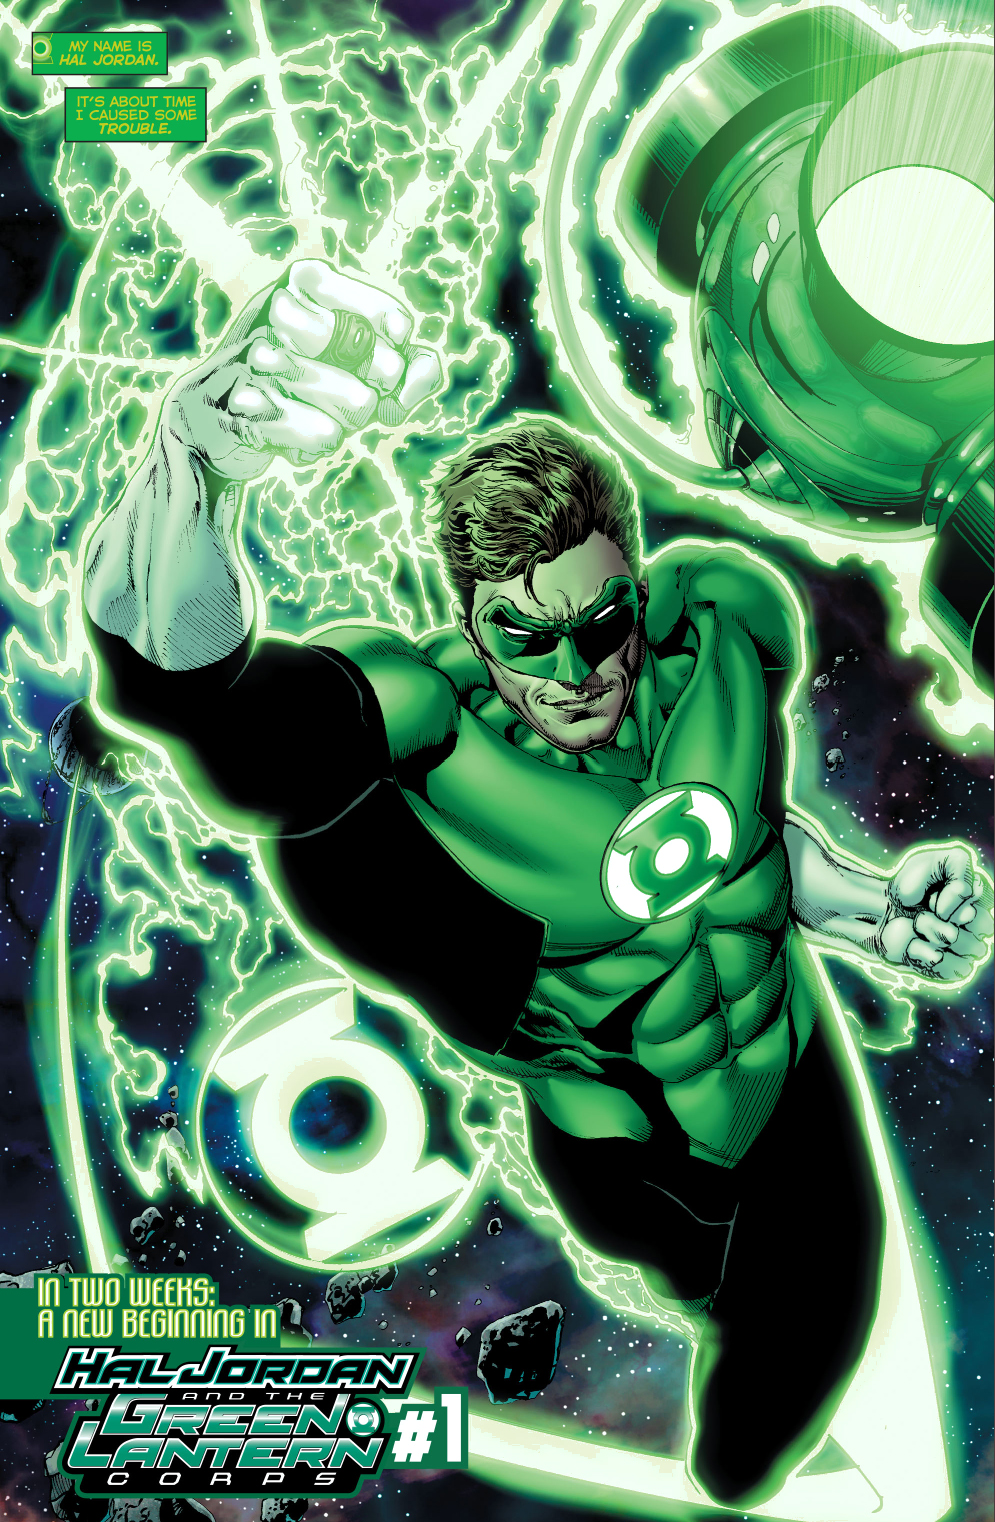 green lantern (hal jordan and the green lantern corps rebirth)